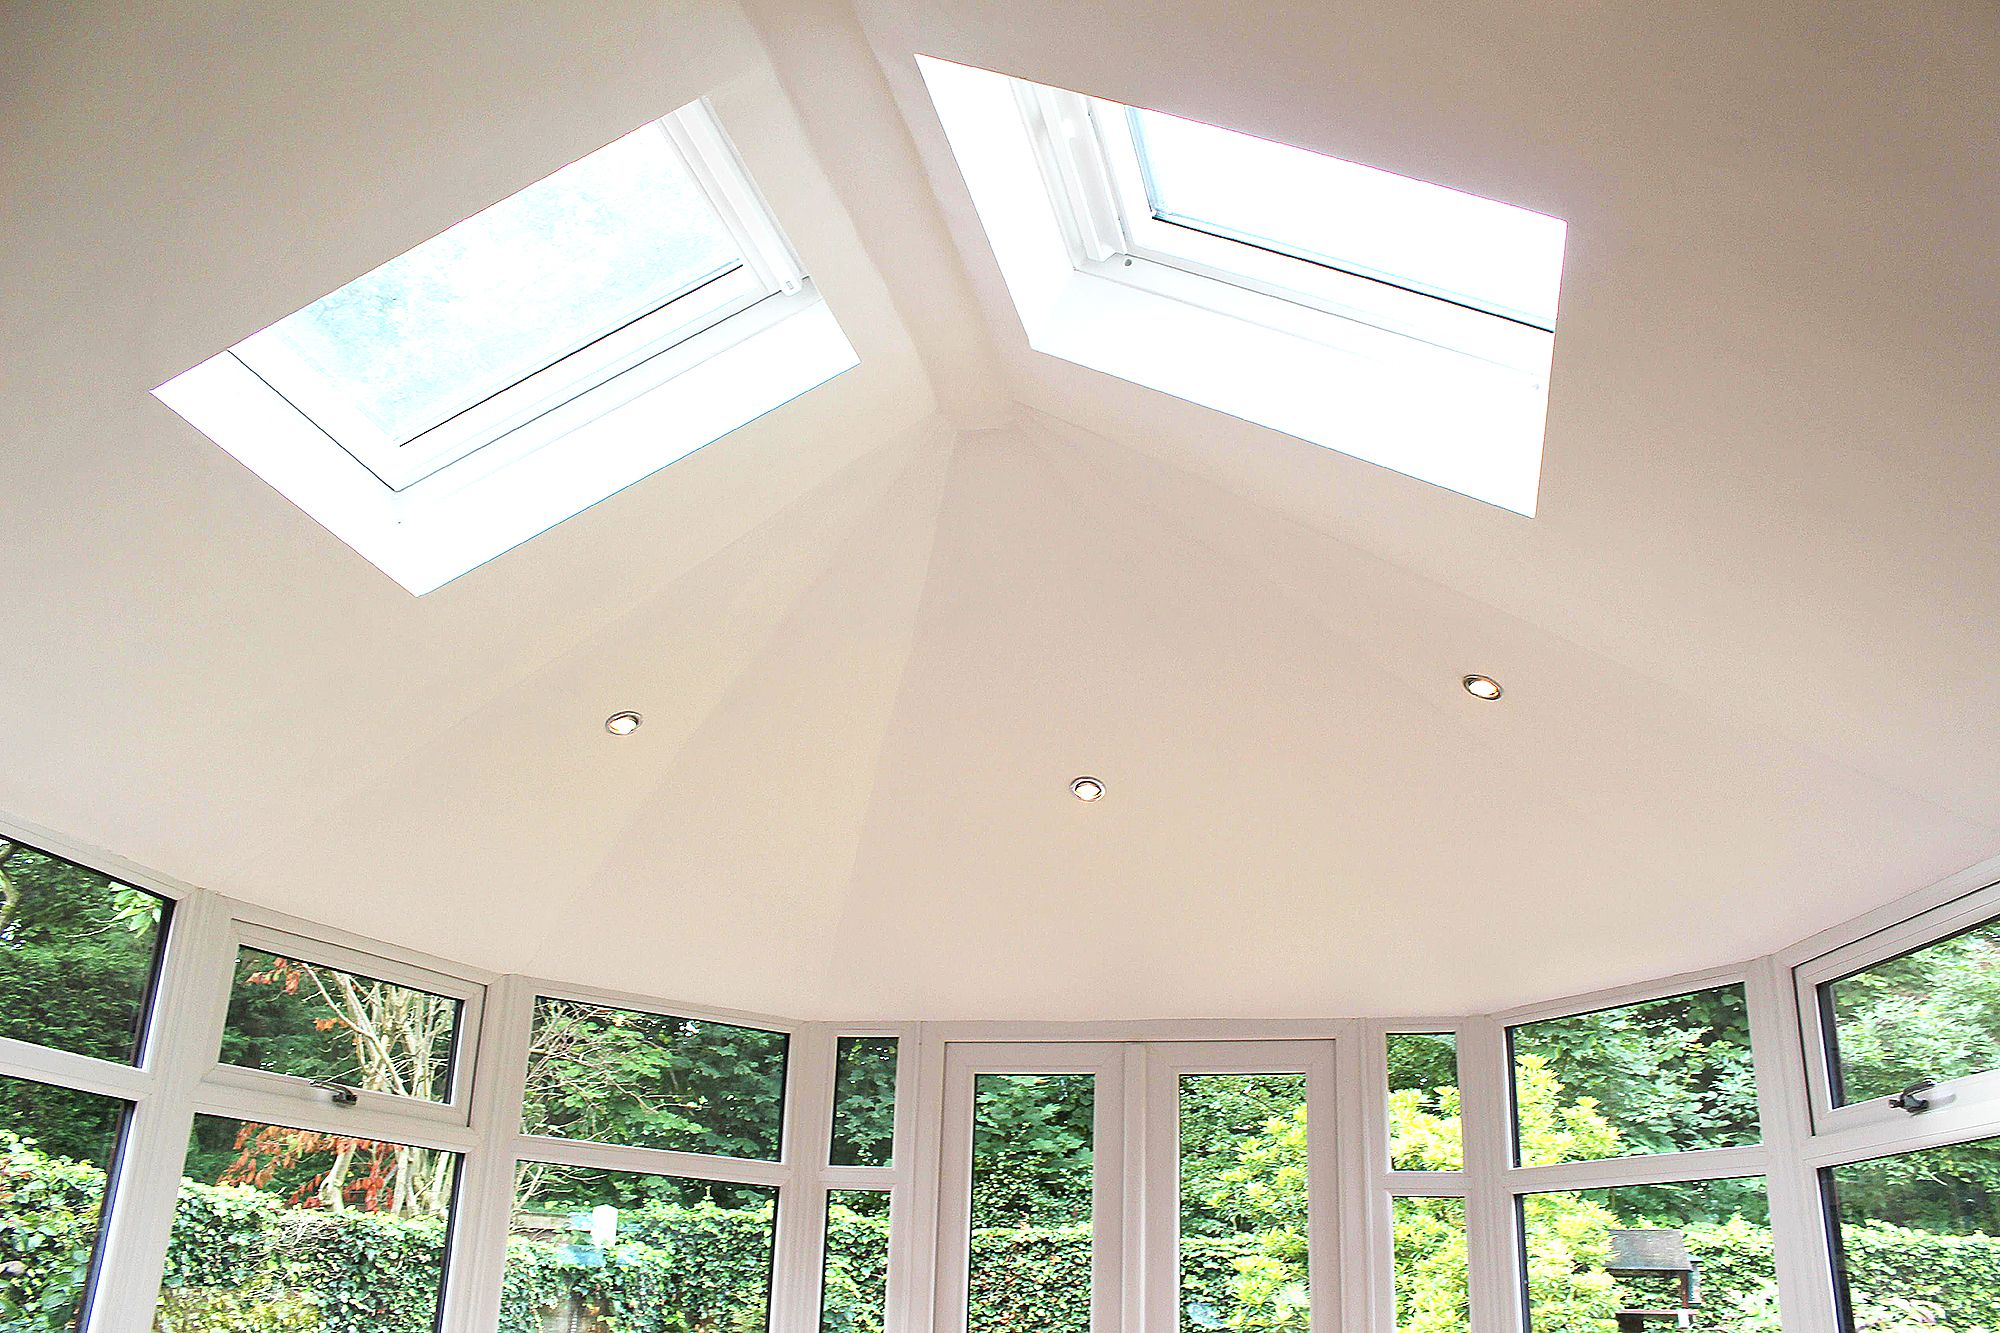 Internal View Of The Supalite A Tiled Conservatory Roof With Chrome Downlights Dekea Roof Vents Si Tiled Conservatory Roof Conservatory Roof Velux Windows